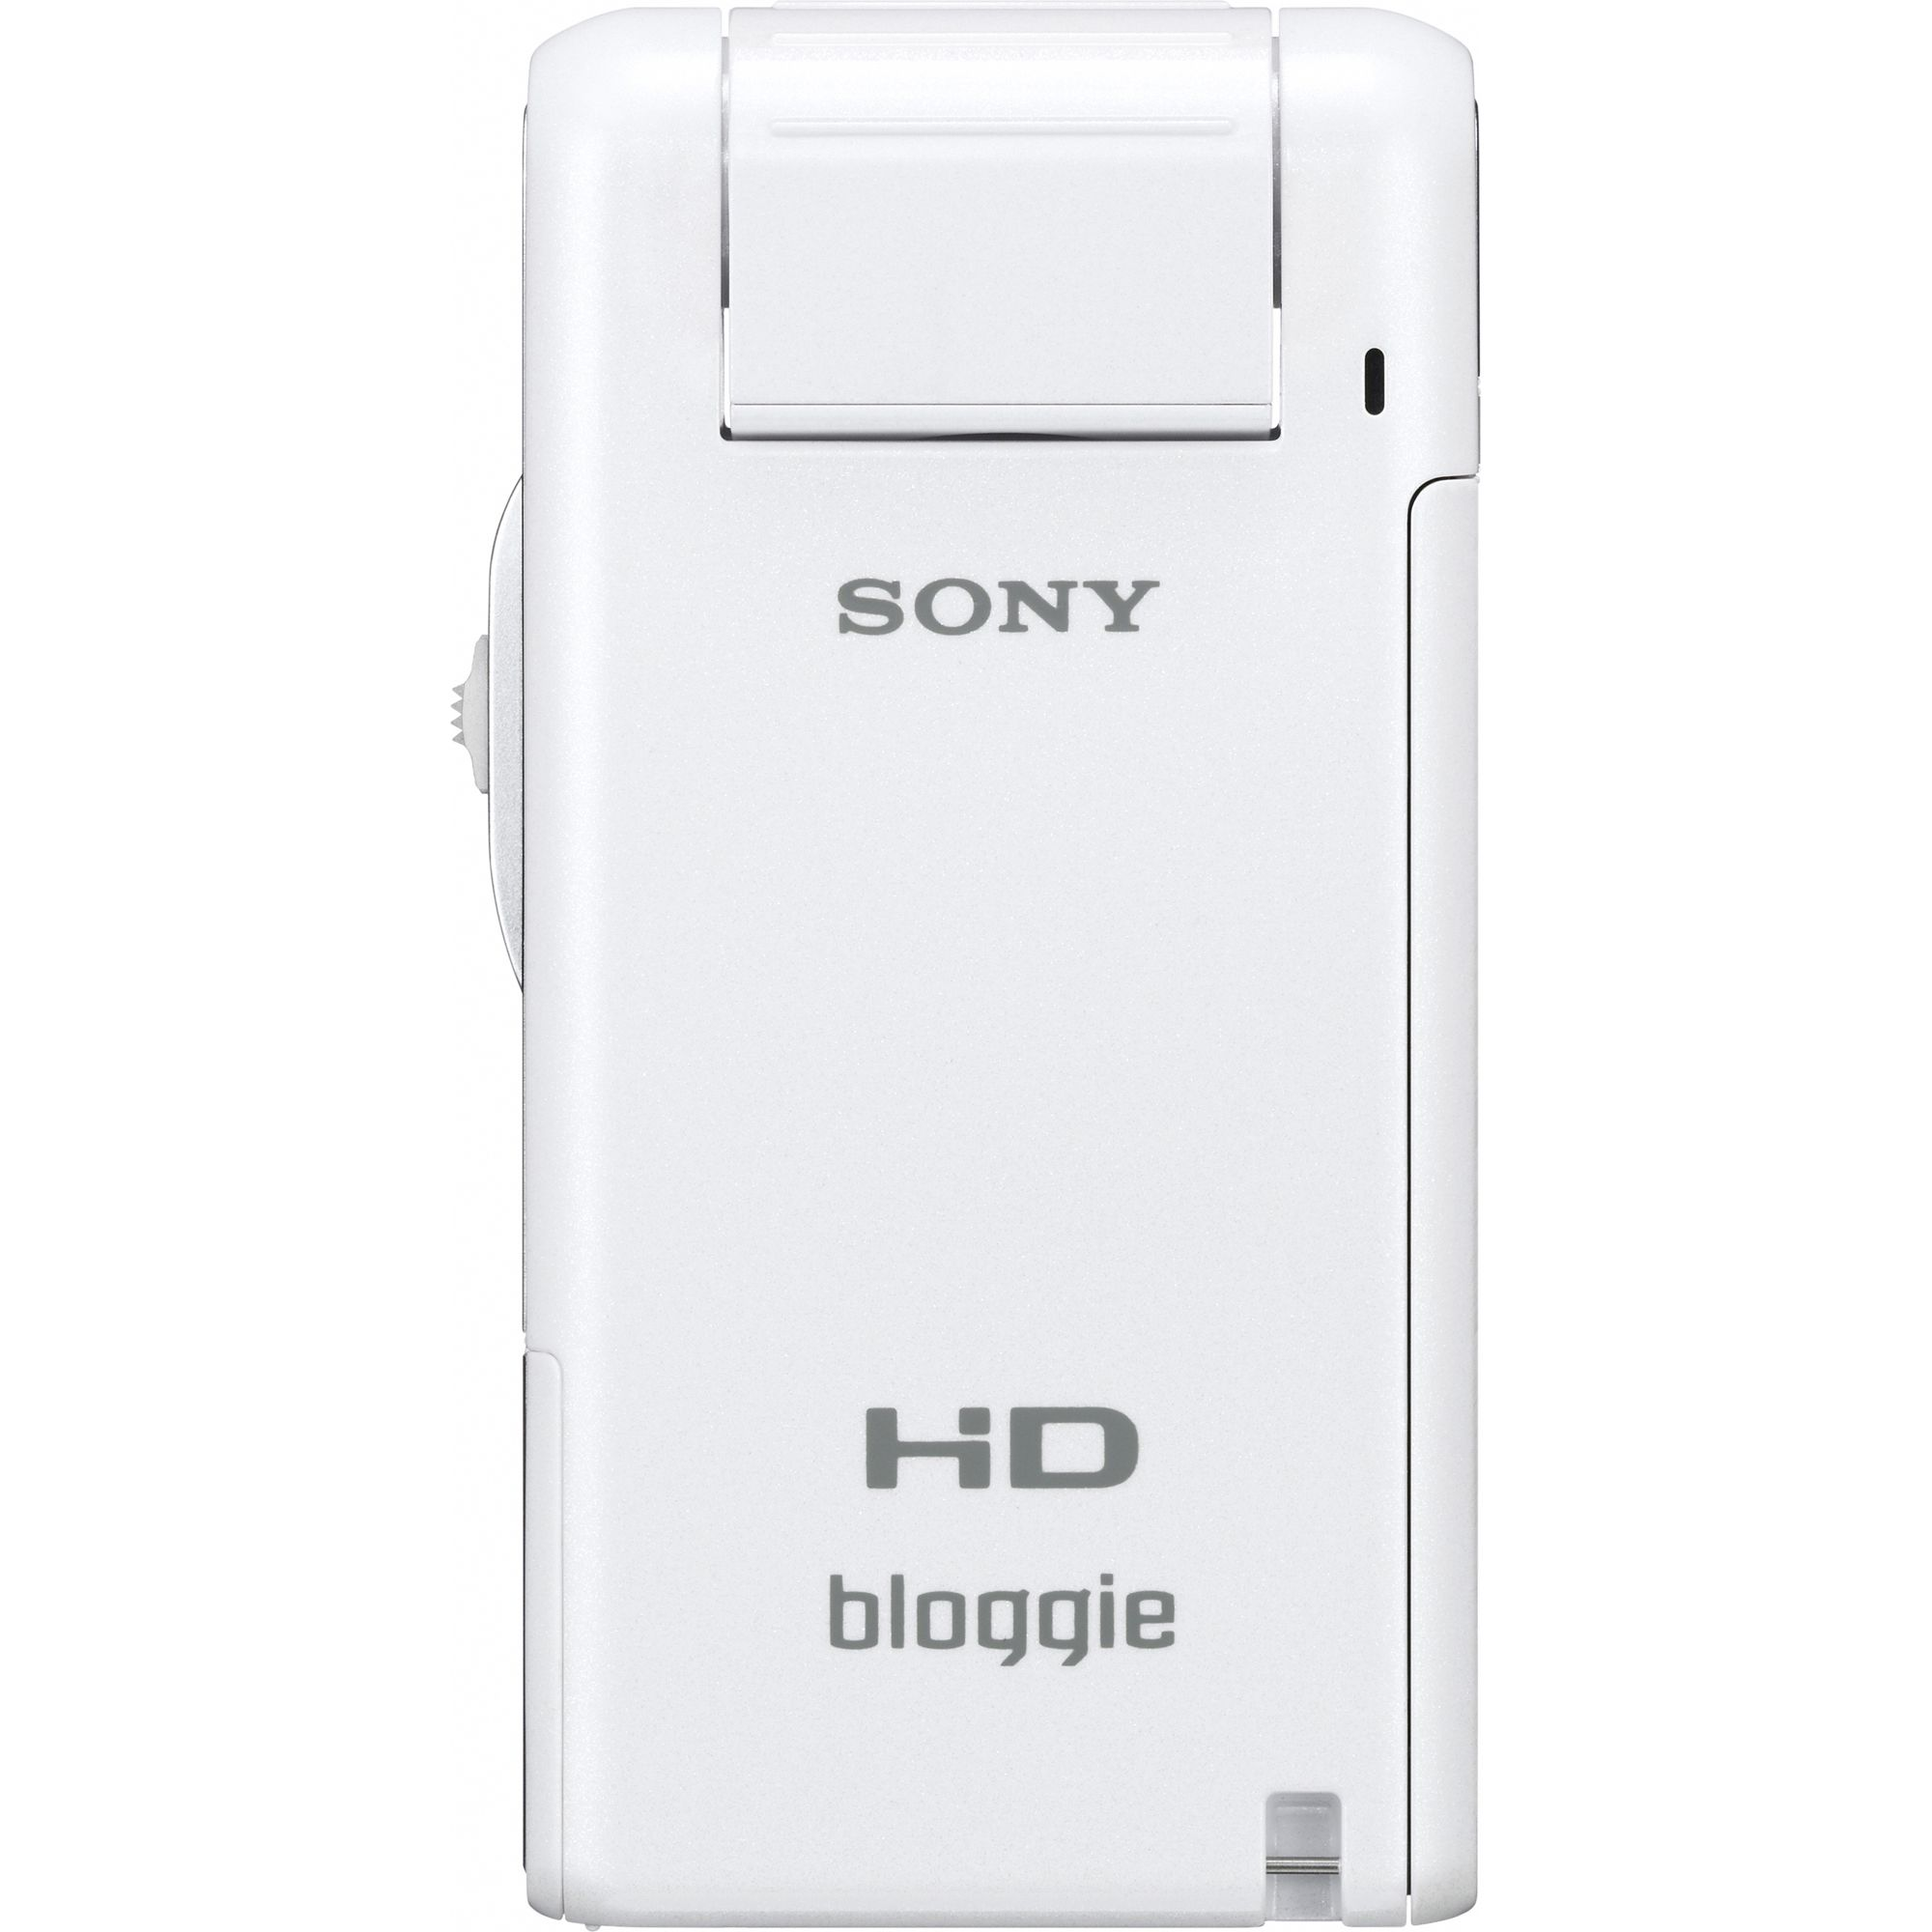 Bloggie™ 5.0 Megapixel 2.4 in. LCD Screen MP4 Camcorder - White                                                             at mygofer.com